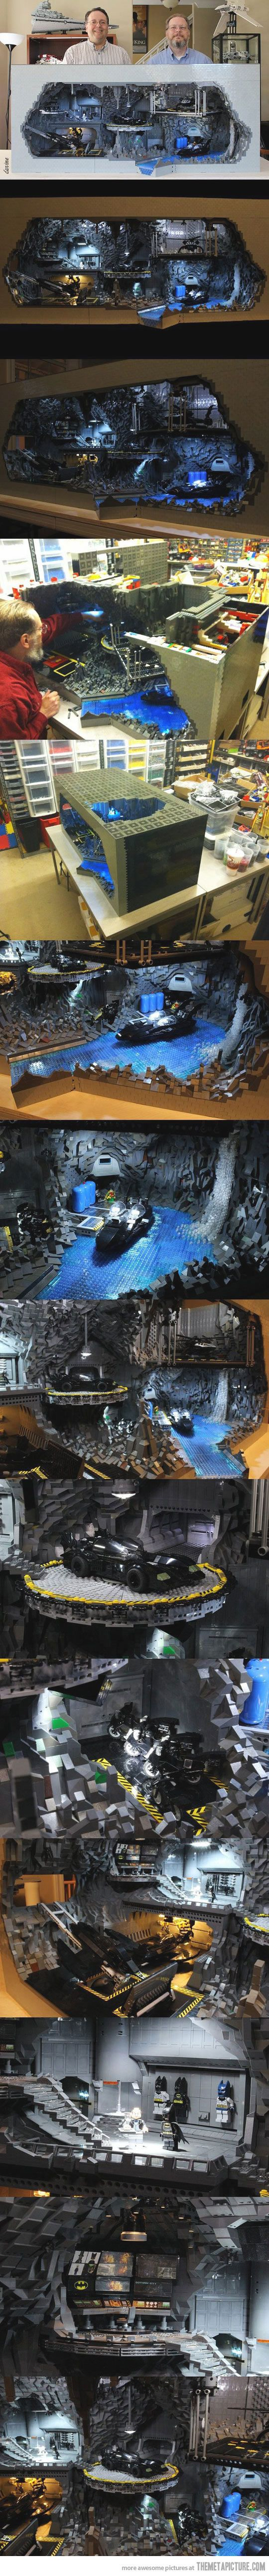 Batcave made out of 20,000 LEGO pieces… now with more detail.